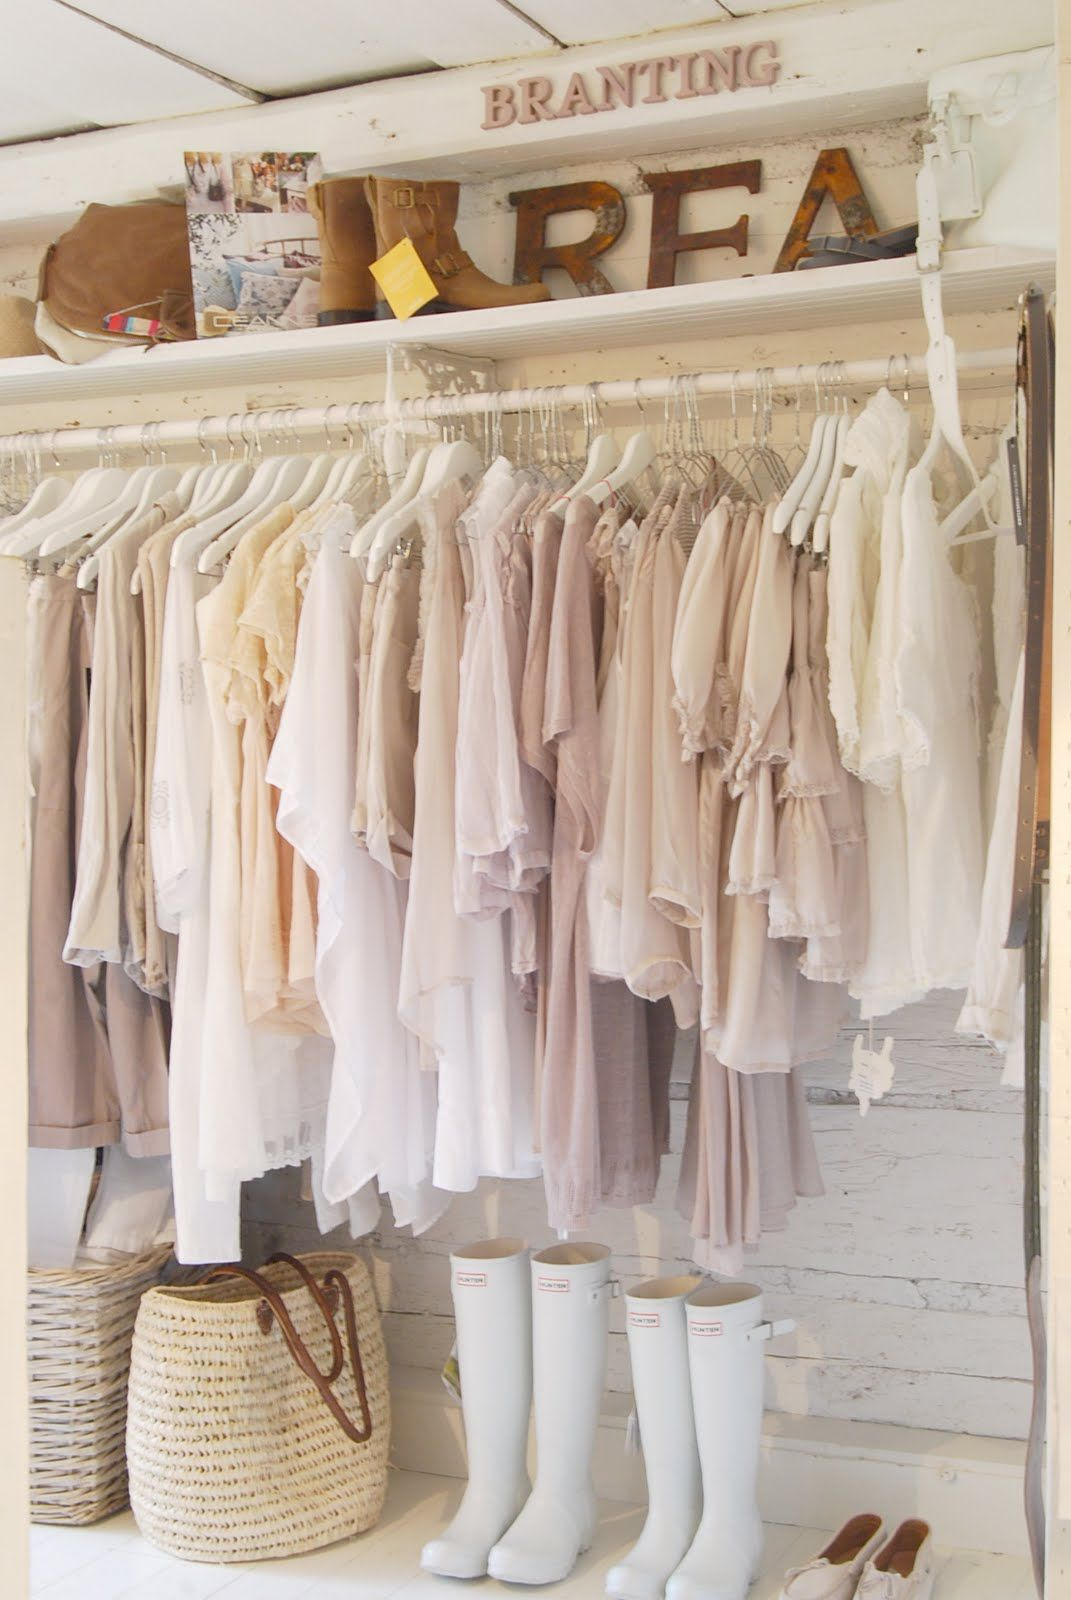 Beautiful The Pale Shabby Chic Colors Textures Make Me Smile Every Single Time